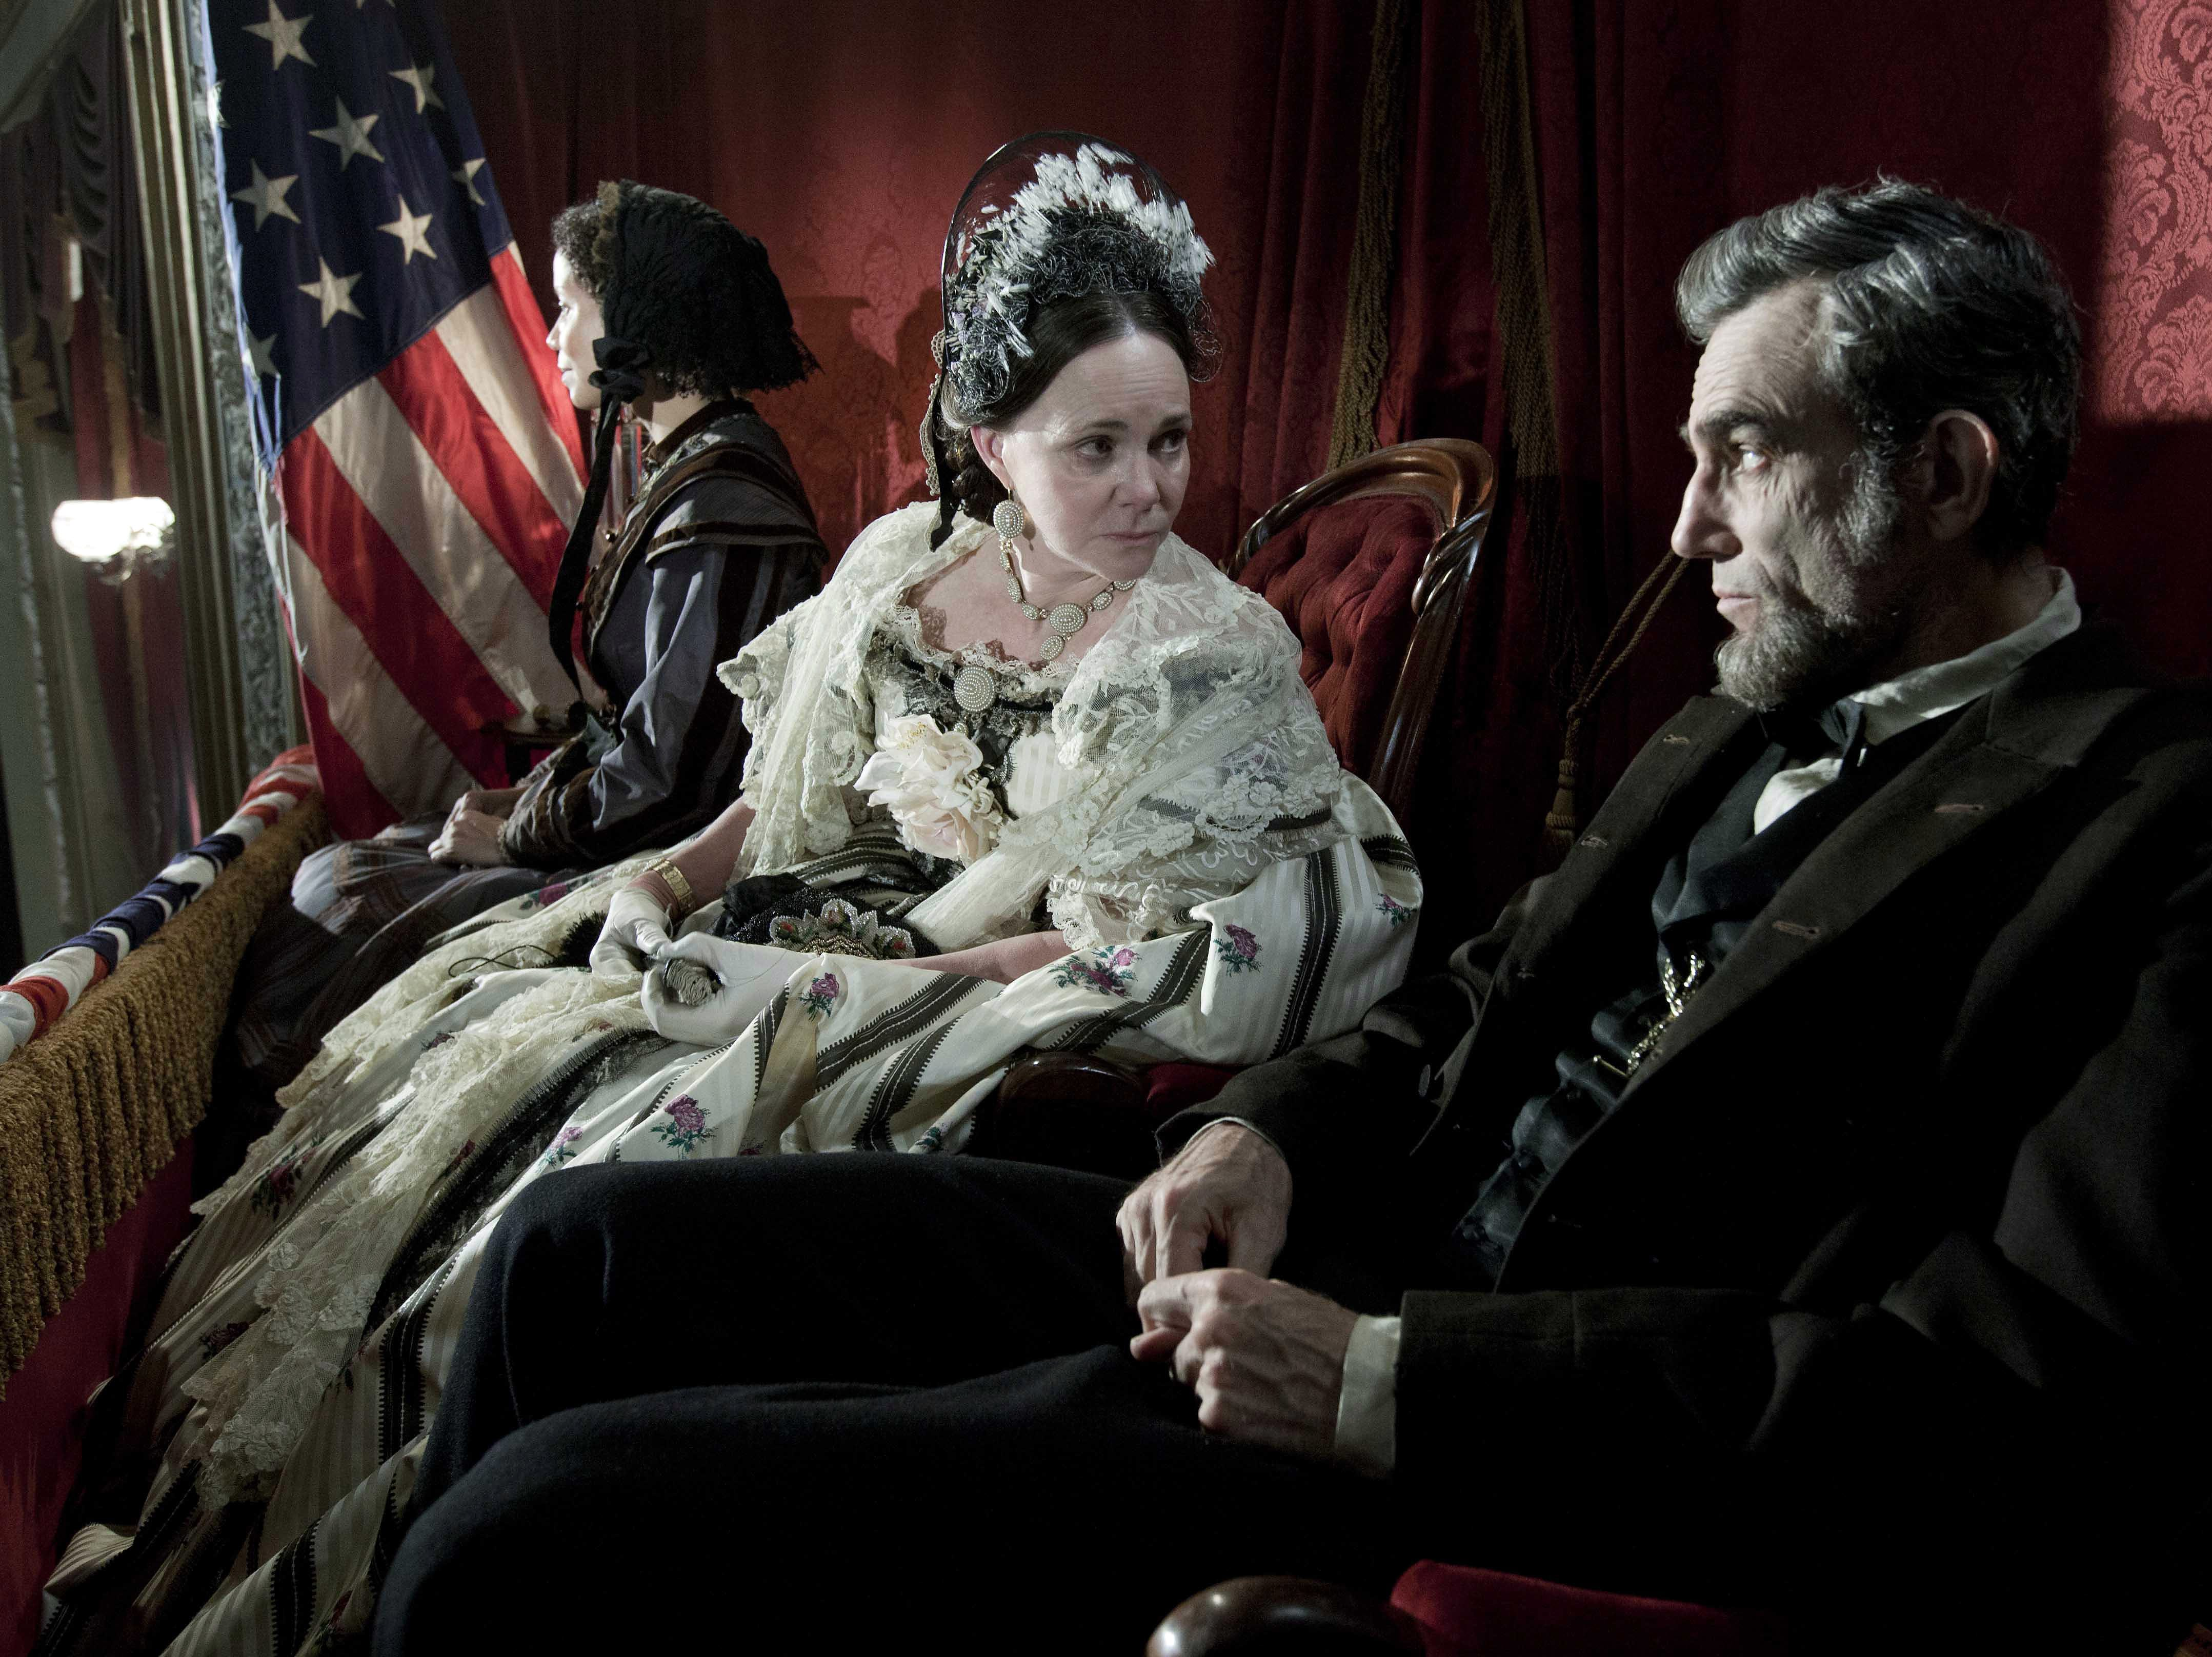 """EDS NOTE: NOT THE ASSASSINATION SCENE  Gloria Reuben as Elizabeth Keckley, Sally Field as Mary Todd Lincoln and Daniel Day-Lewis as Abraham Lincoln in a scene from the motion picture """"Lincoln."""""""